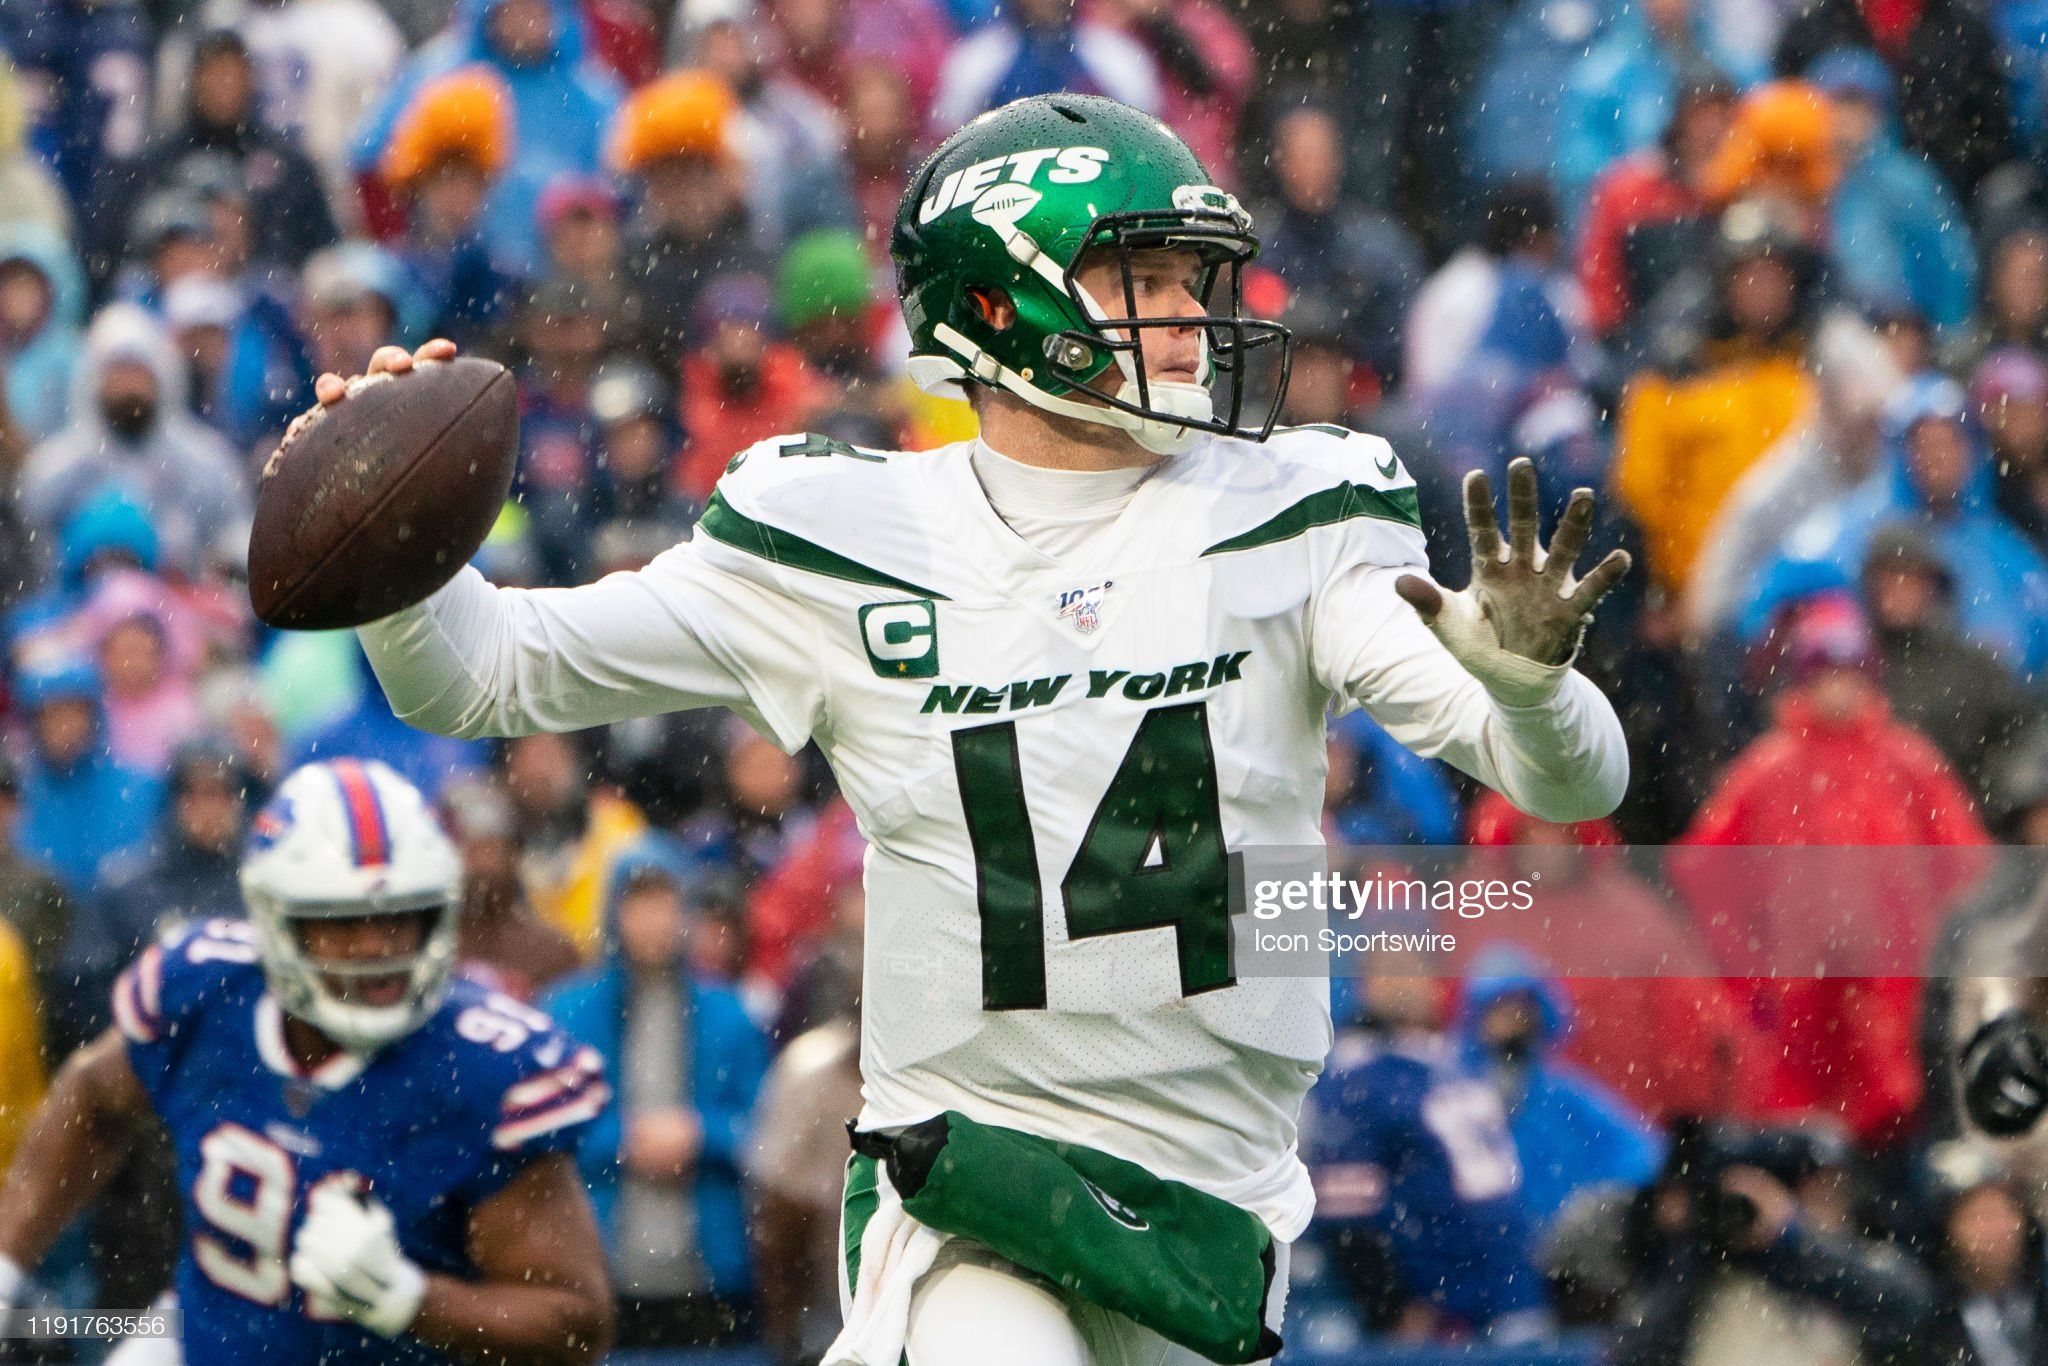 NFL: DEC 29 Jets at Bills : Foto jornalística